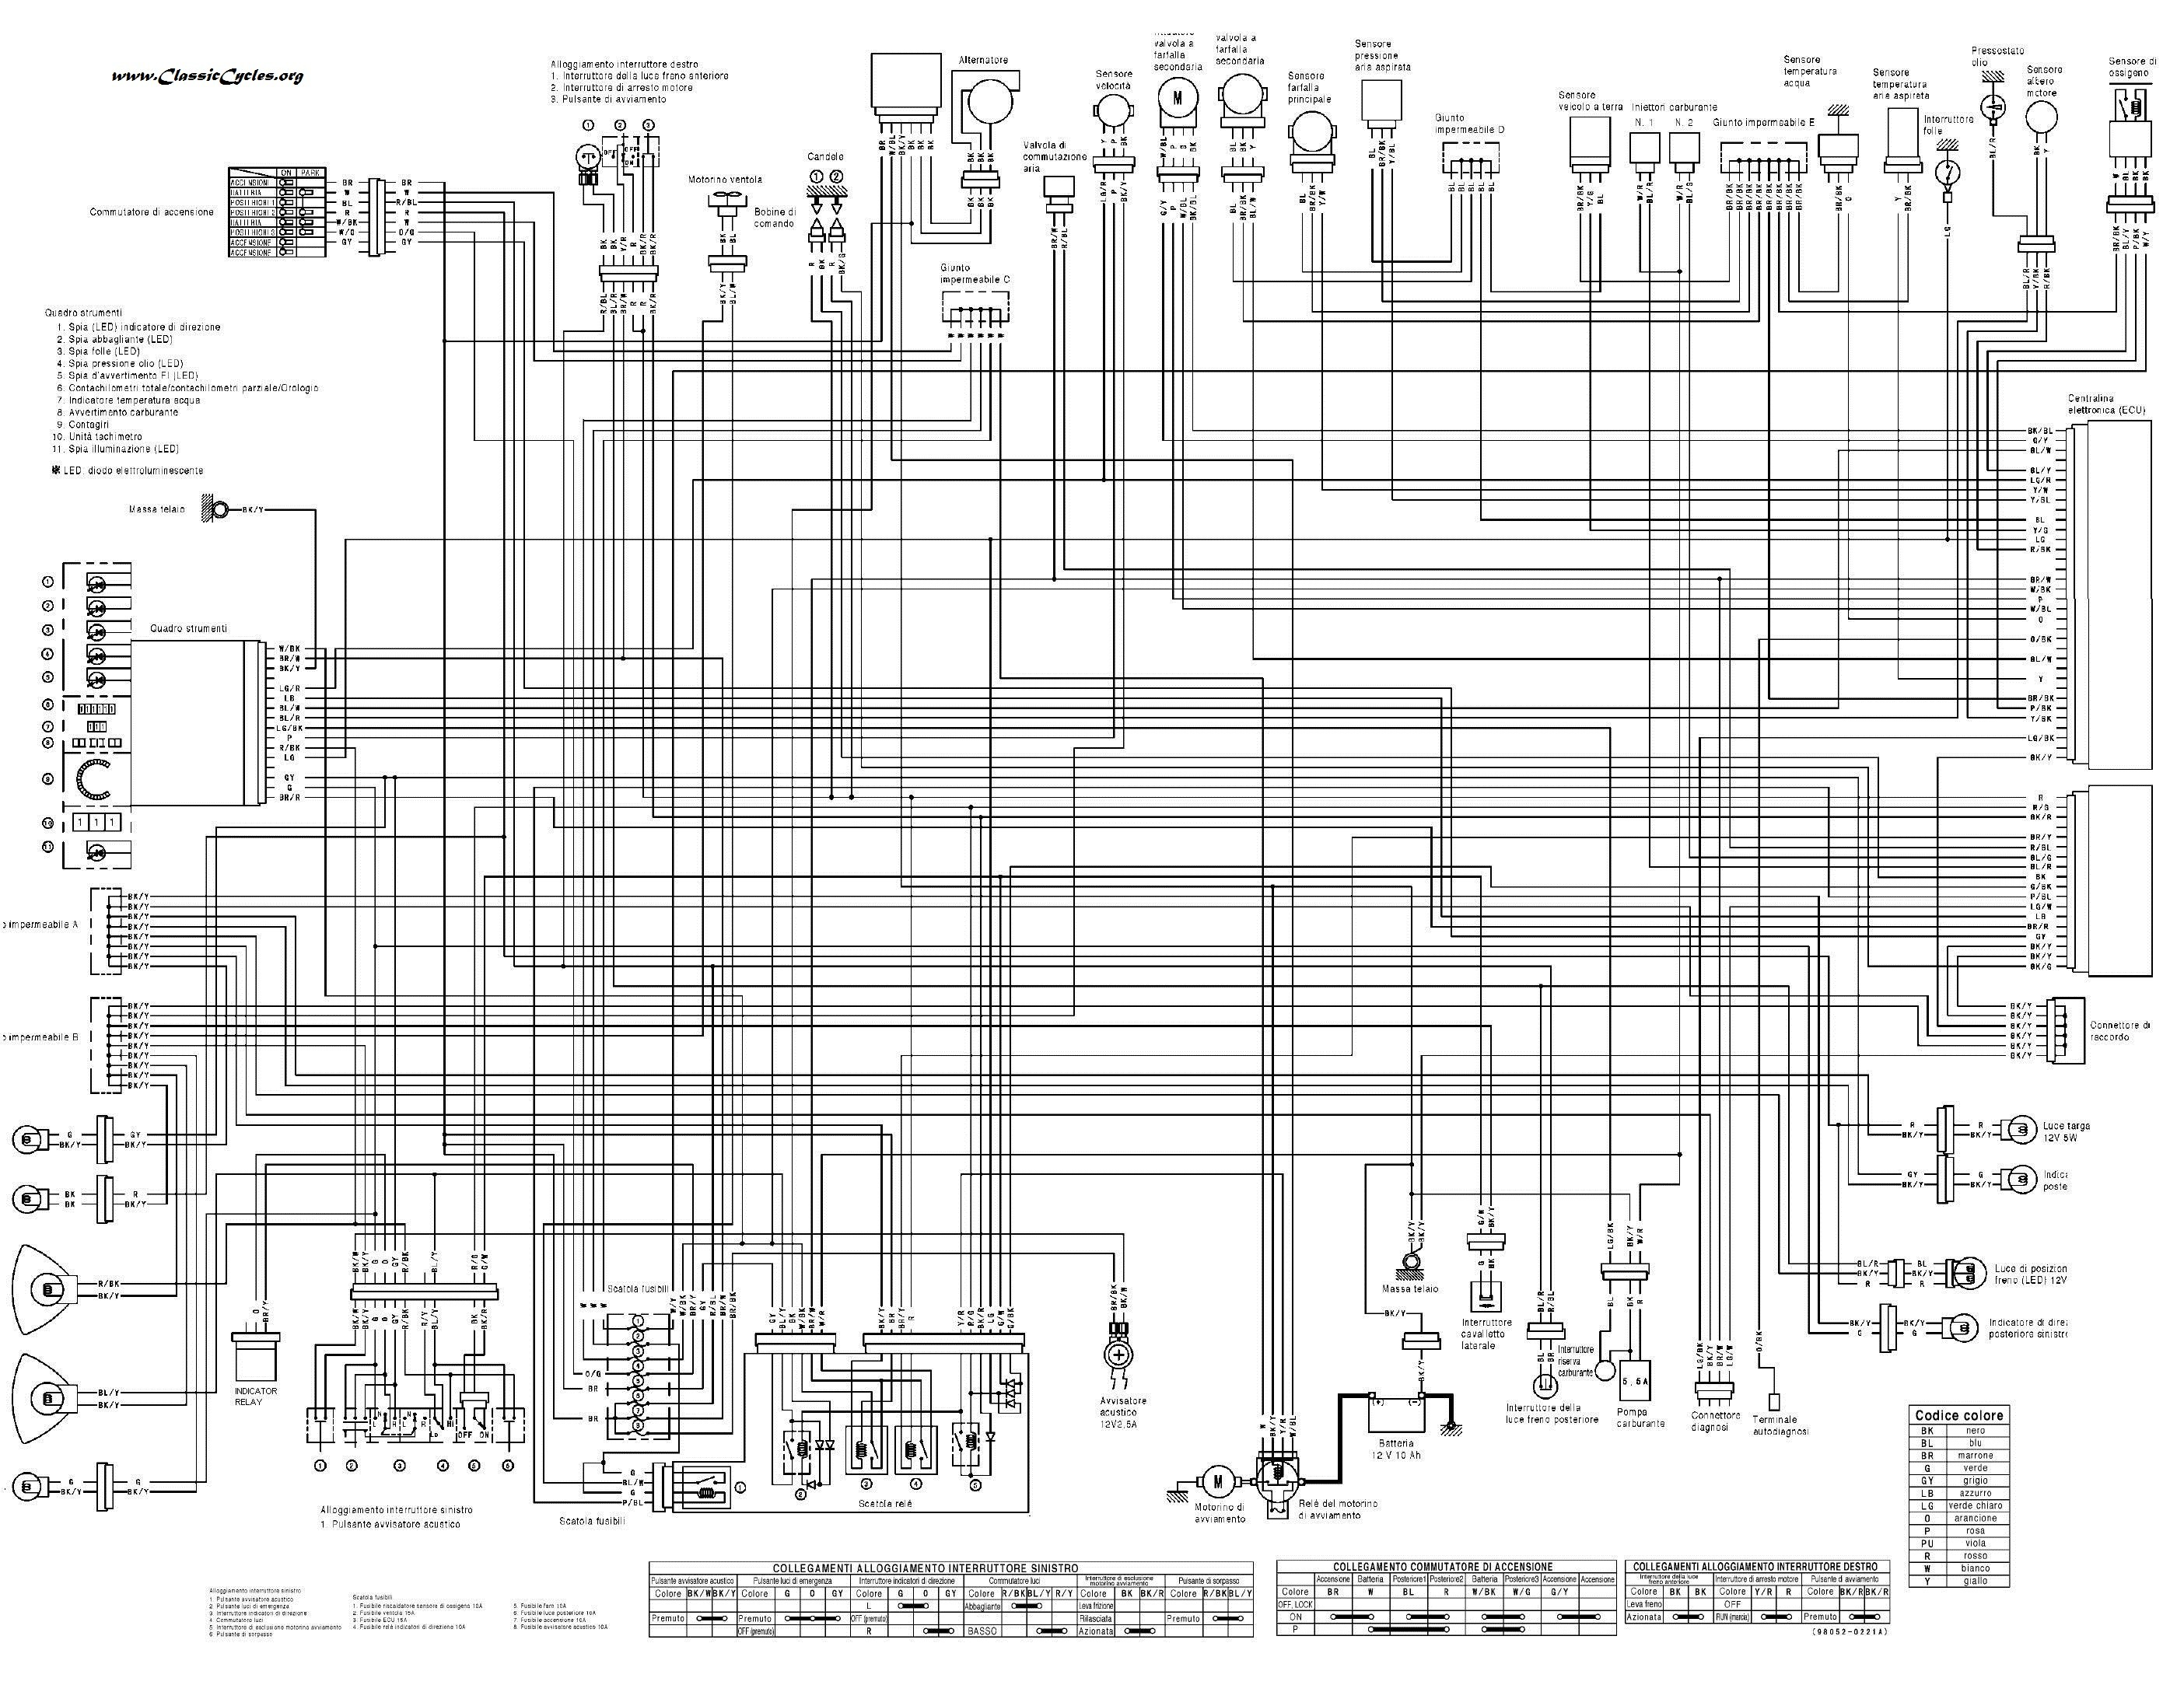 1998 Dodge Durango Engine Diagram 2003 Dodge Durango Emissions Diagram Free  Download Wiring Diagram Of 1998